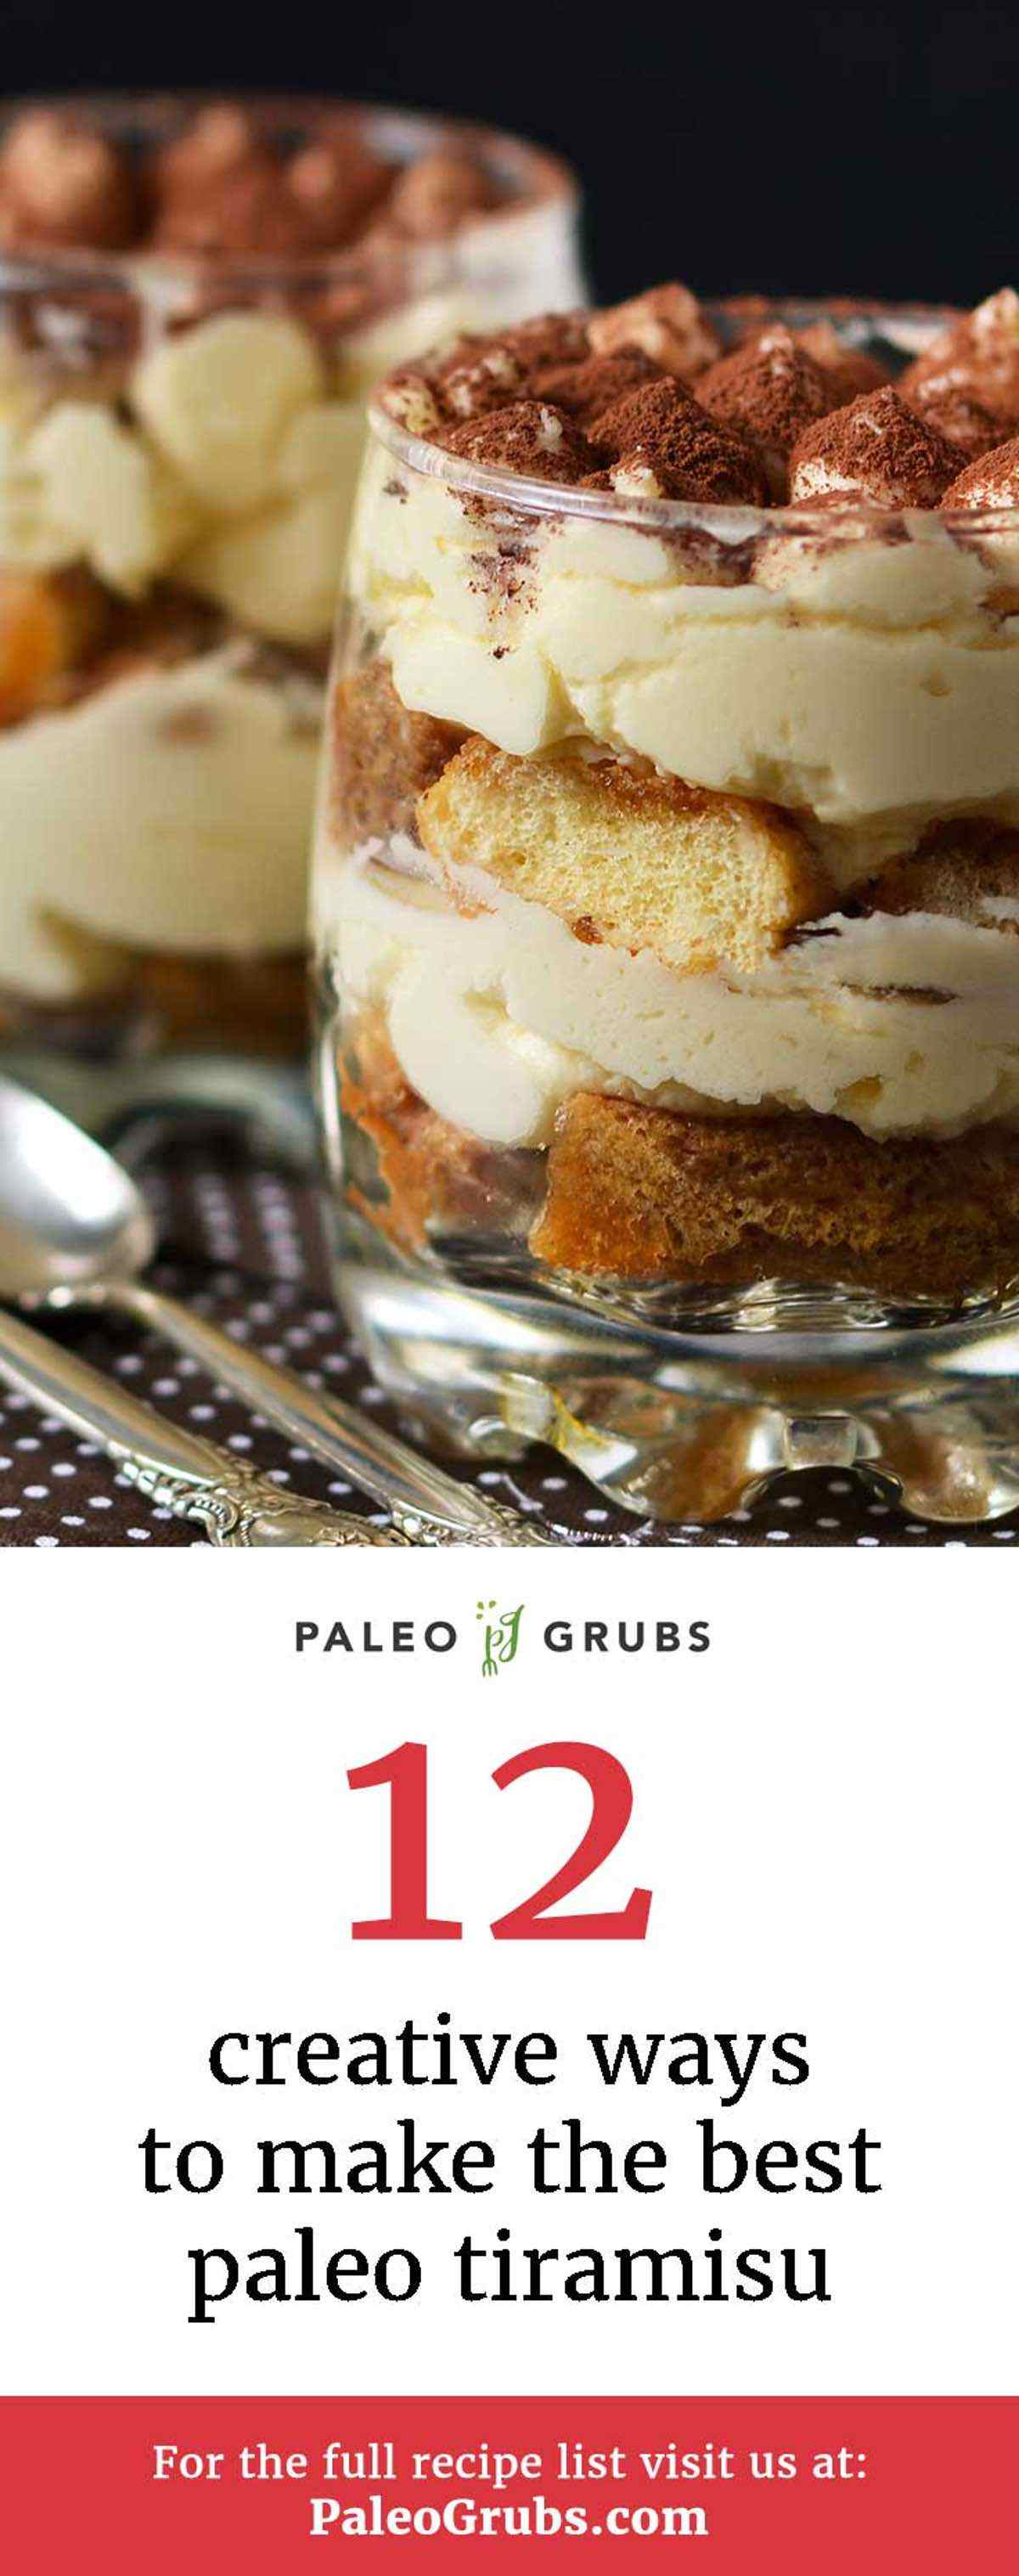 12 Creative Ways To Make The Best Paleo Tiramisu Paleo Grubs